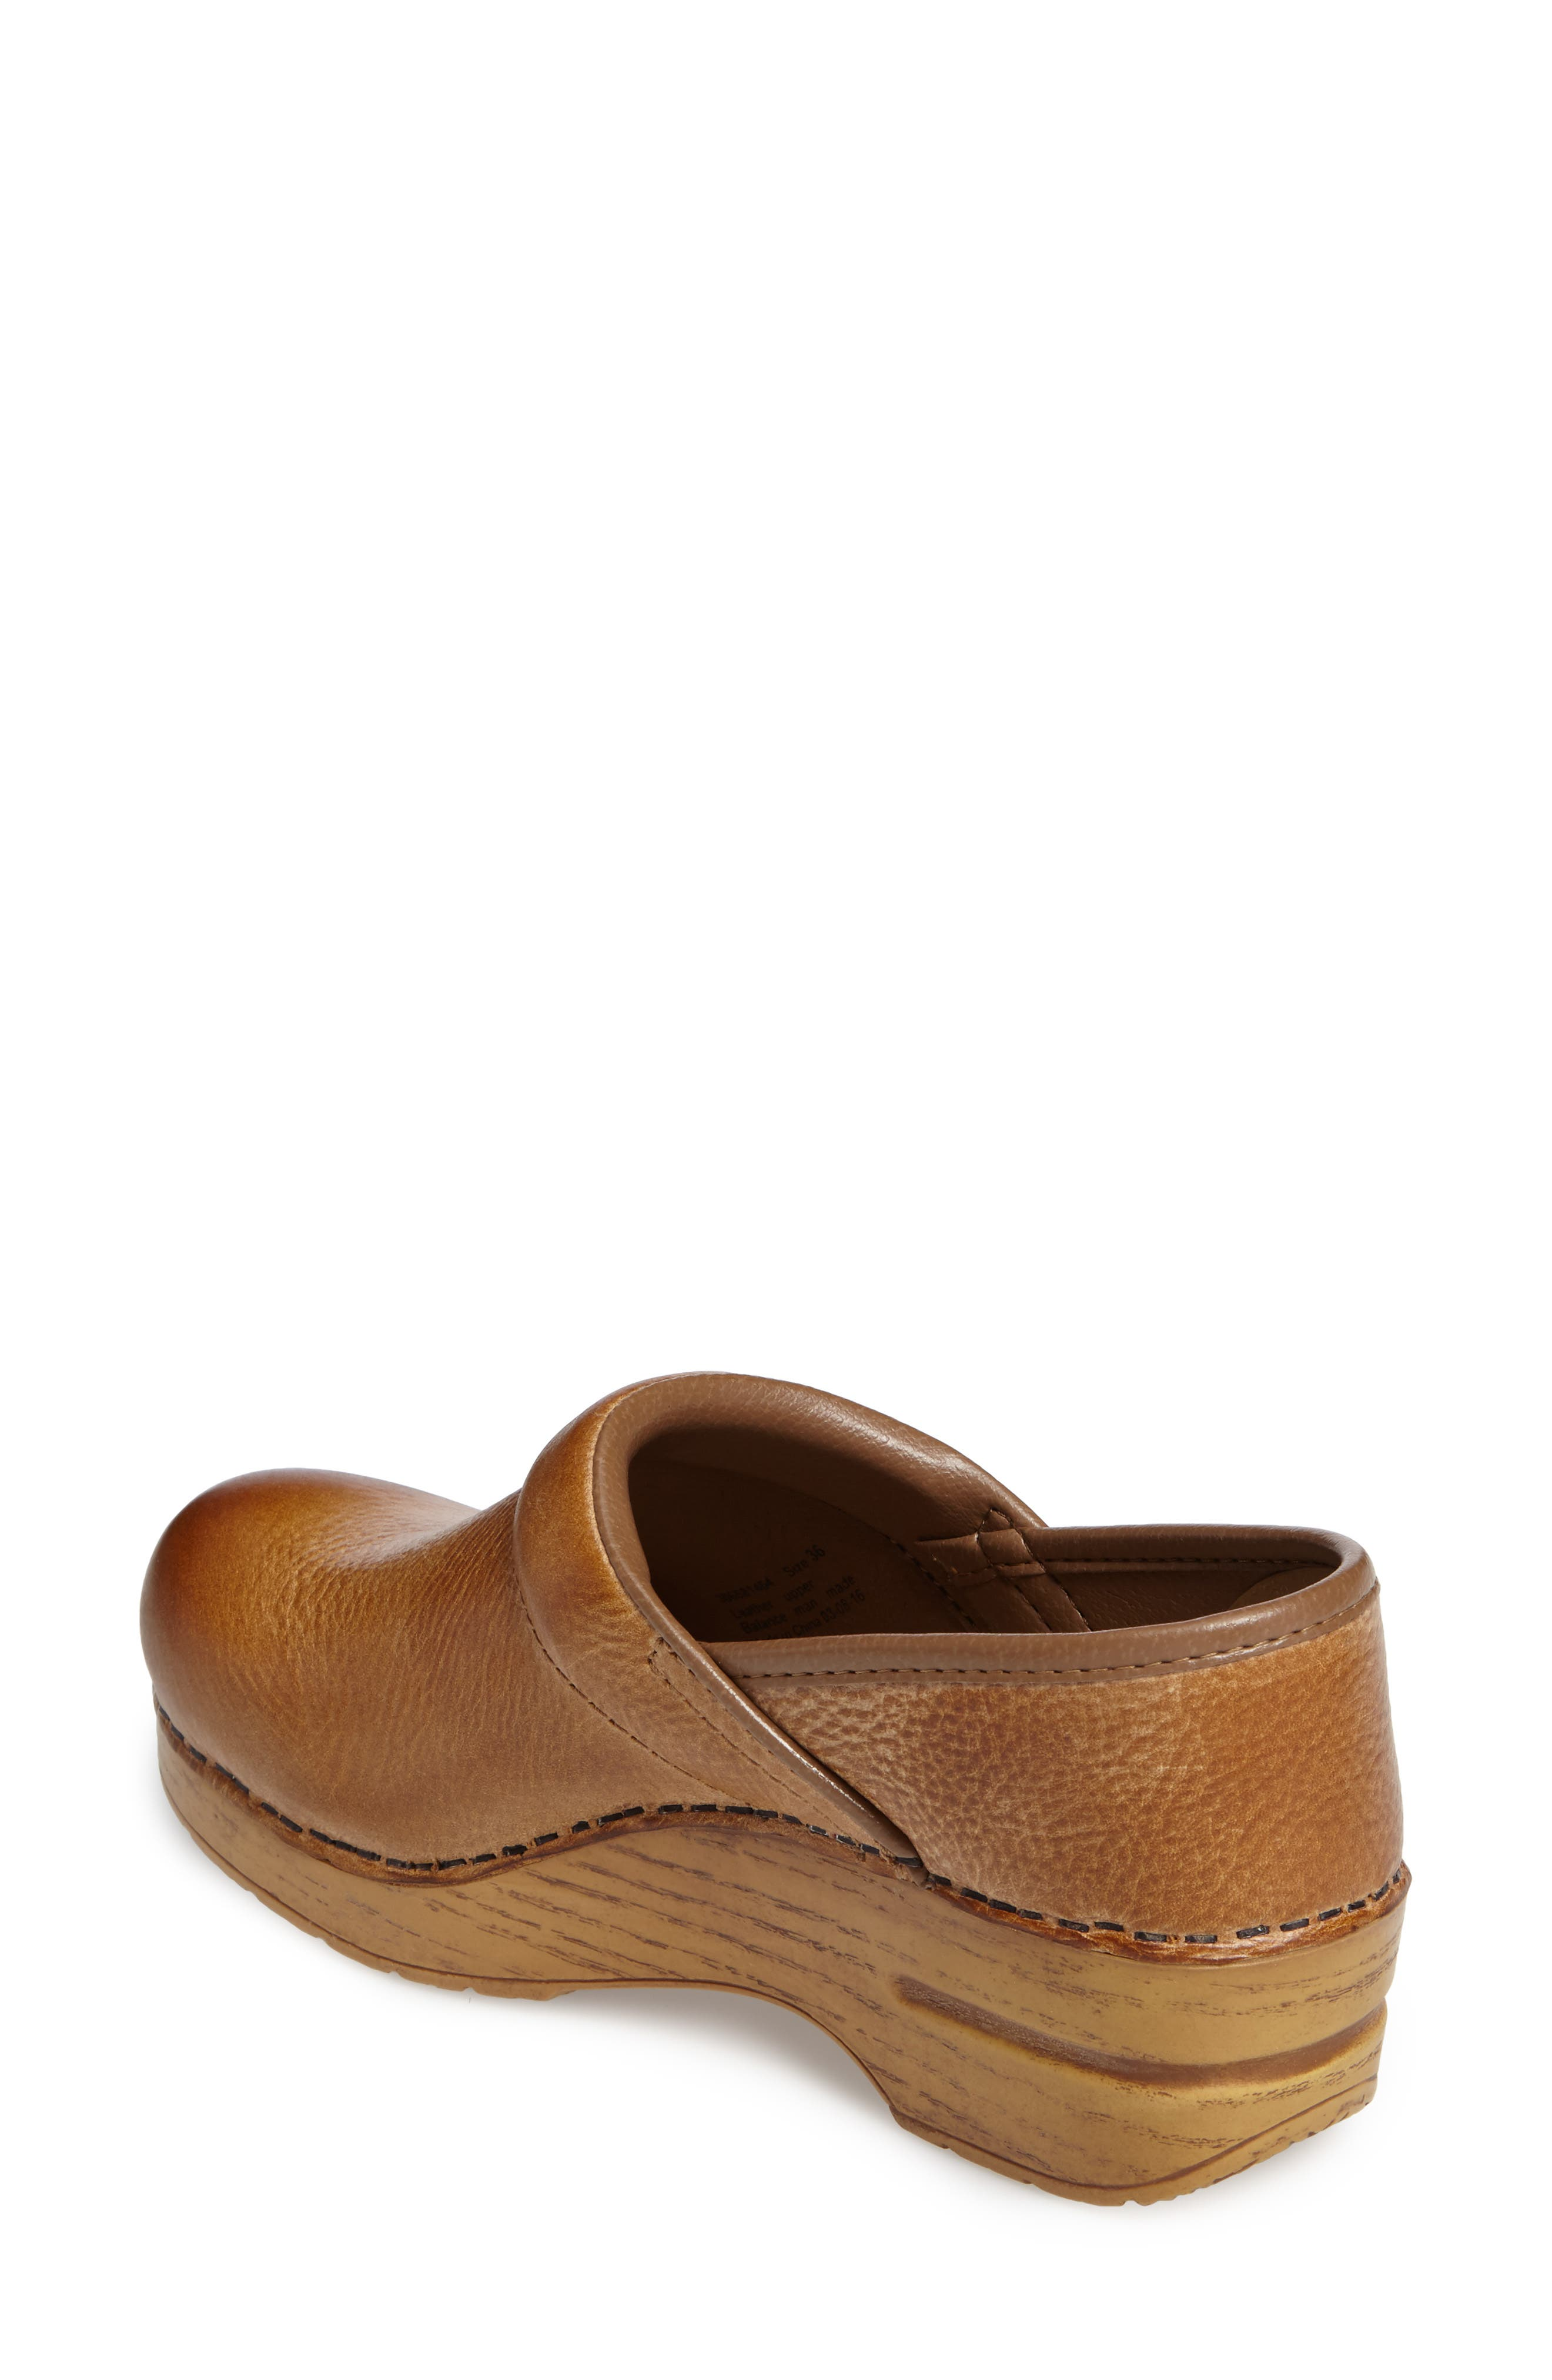 Distressed Professional Clog,                             Alternate thumbnail 2, color,                             HONEY LEATHER